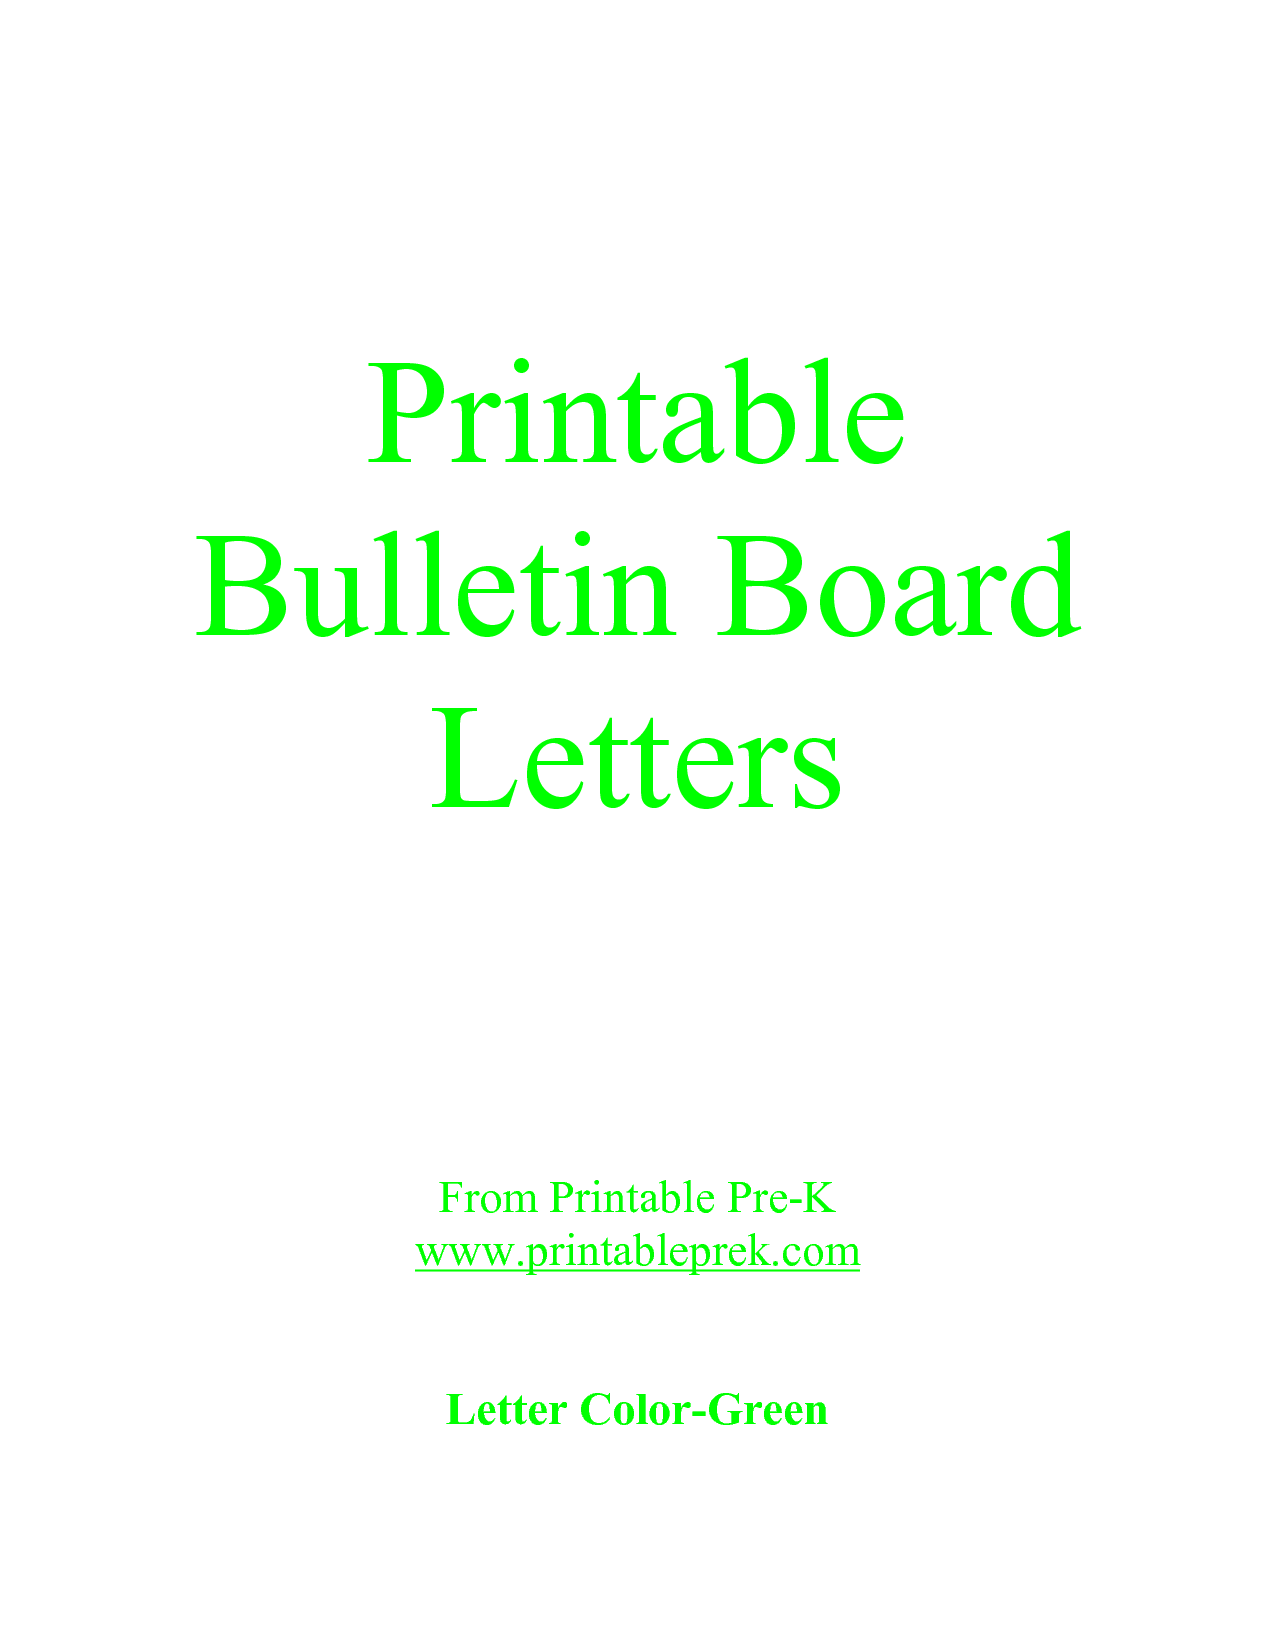 bulletin board letters letter printable images gallery category page 17 354